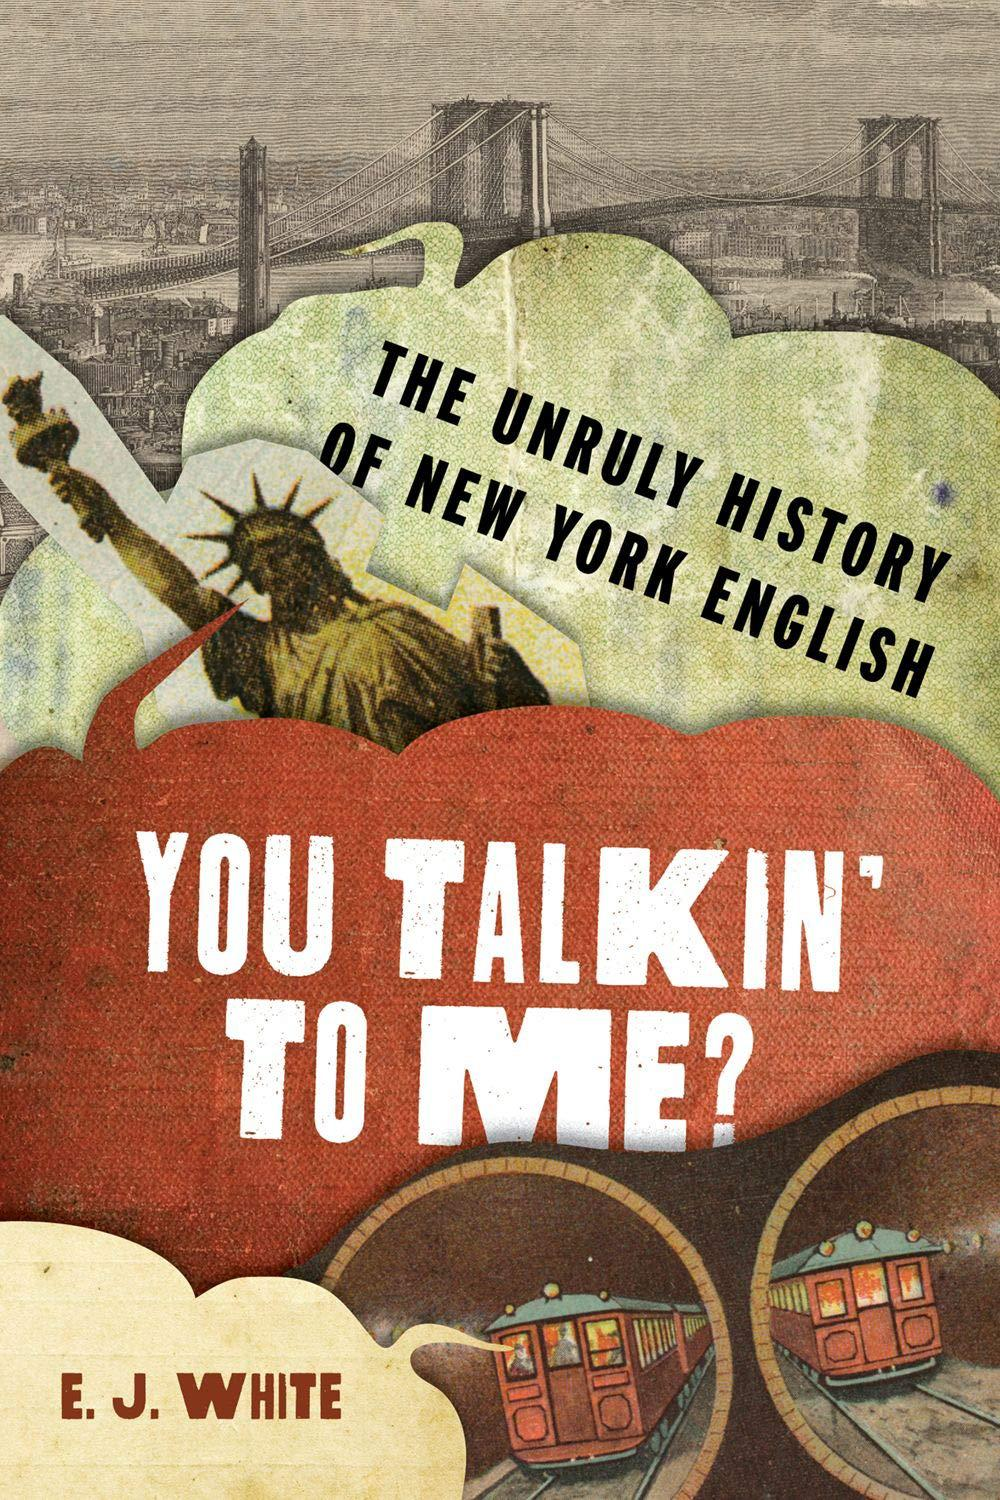 You Talkin' To Me?: The Unruly History of New York English (The Dialects of North America): White, E.J.: 9780190657215: Amazon.com: Books